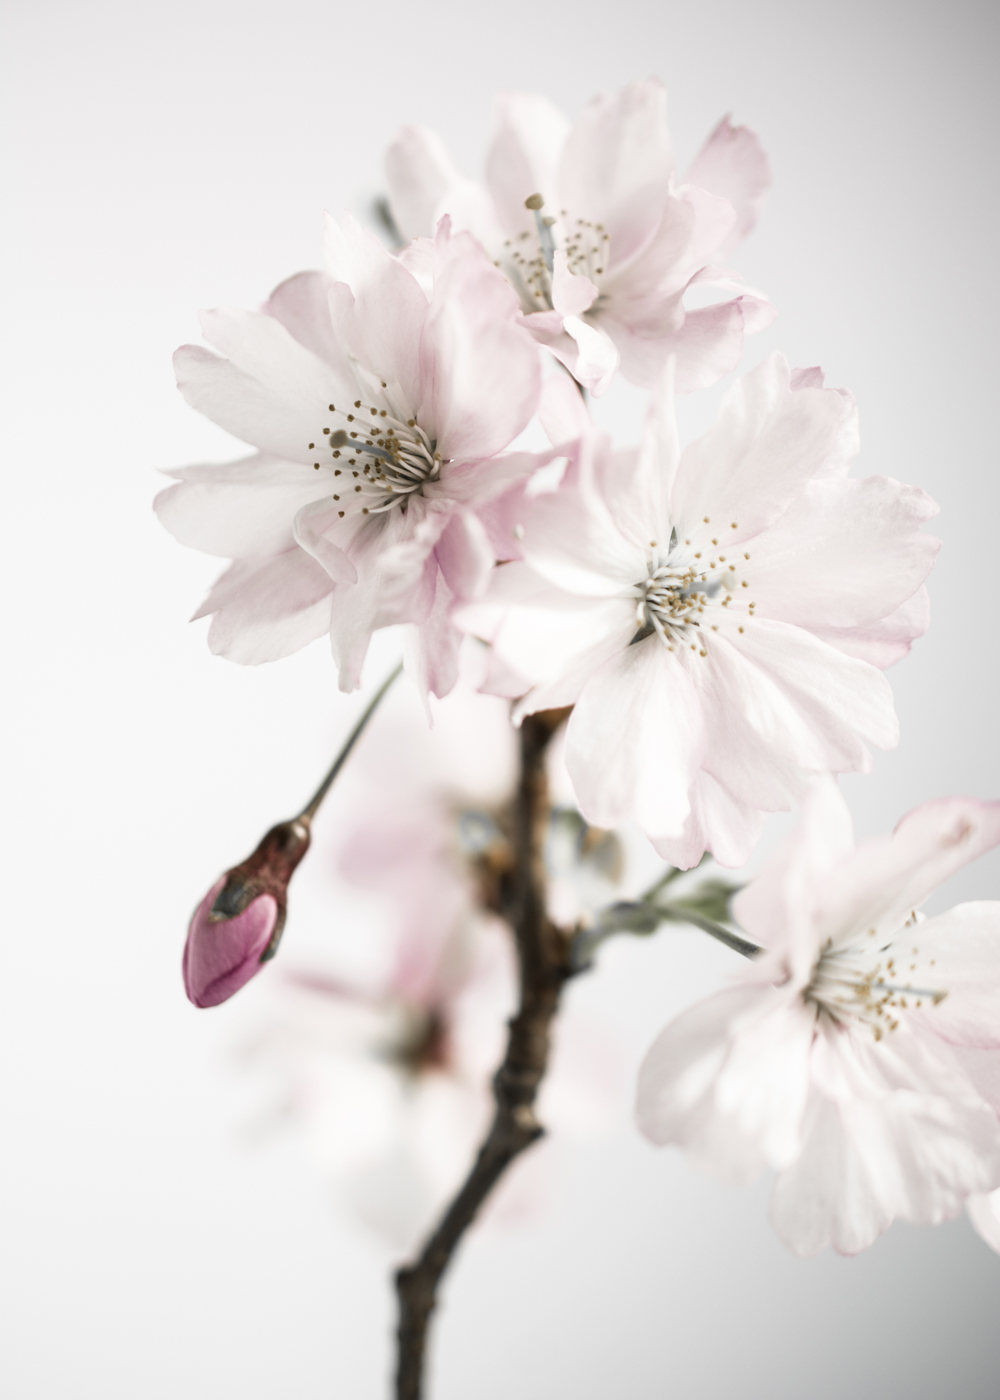 Ancient blossom no.3 poster – 50x70